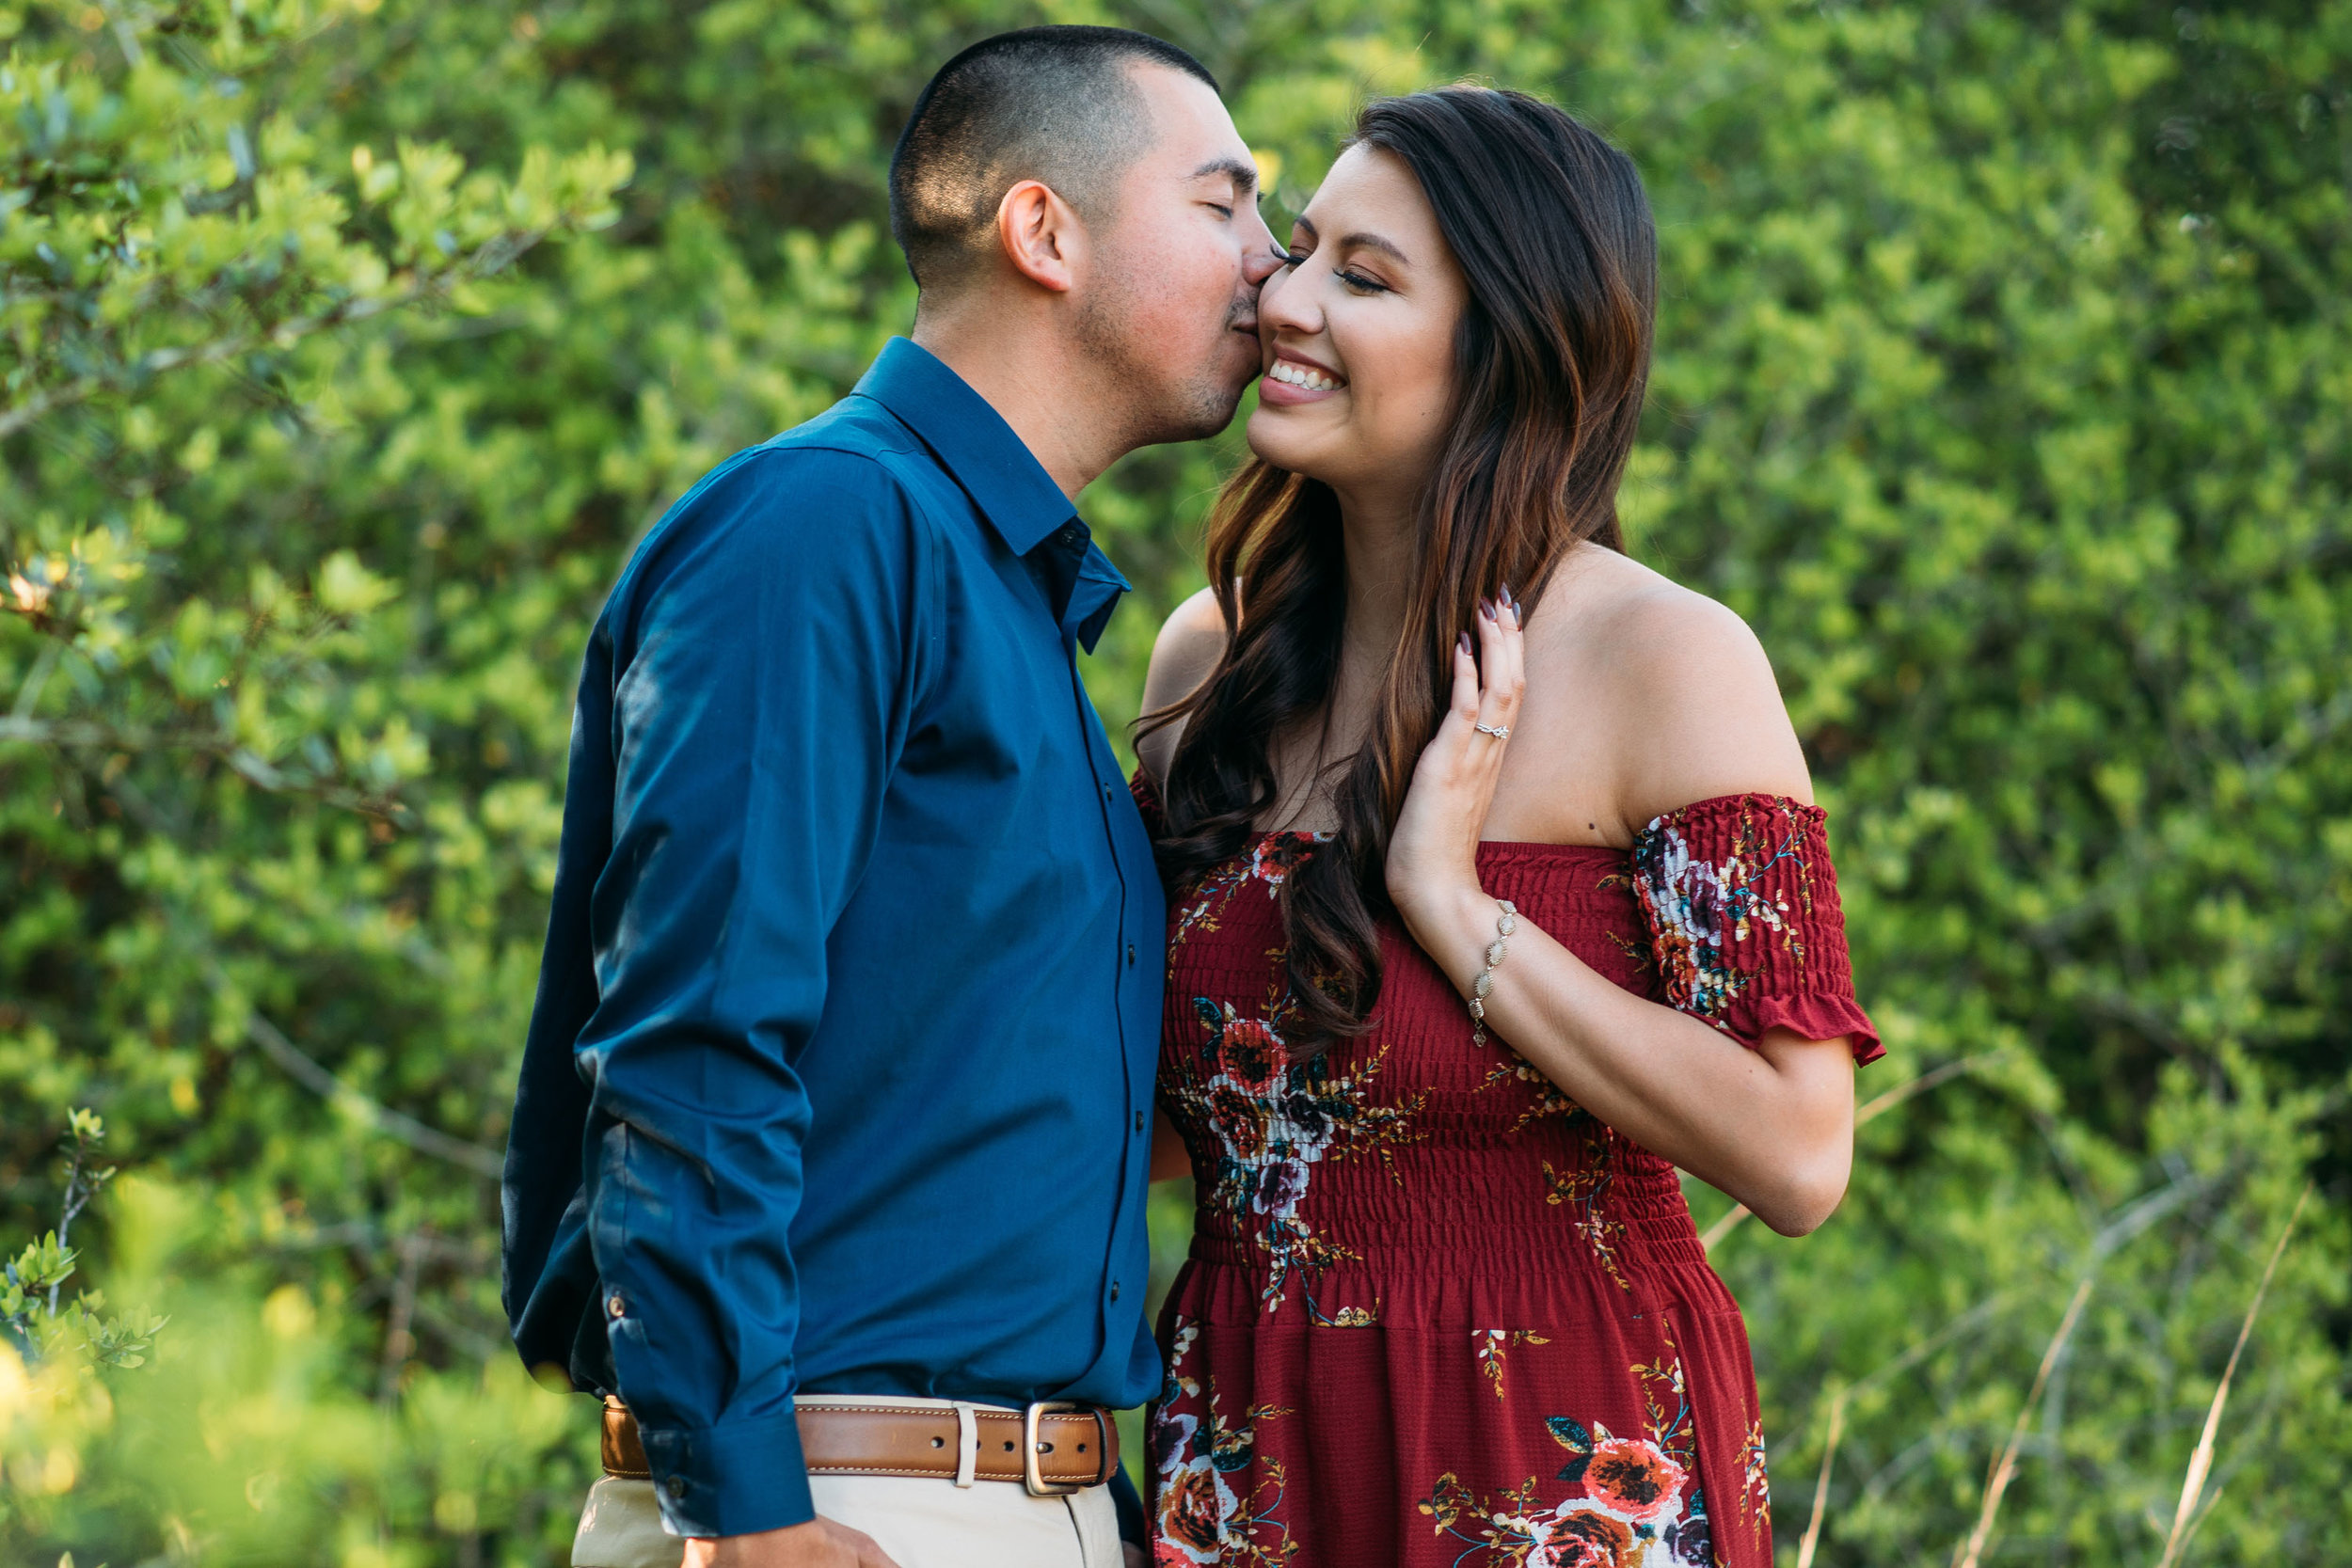 Aggie_Engagement_CollegeStation_LickCreekPark_13.jpg